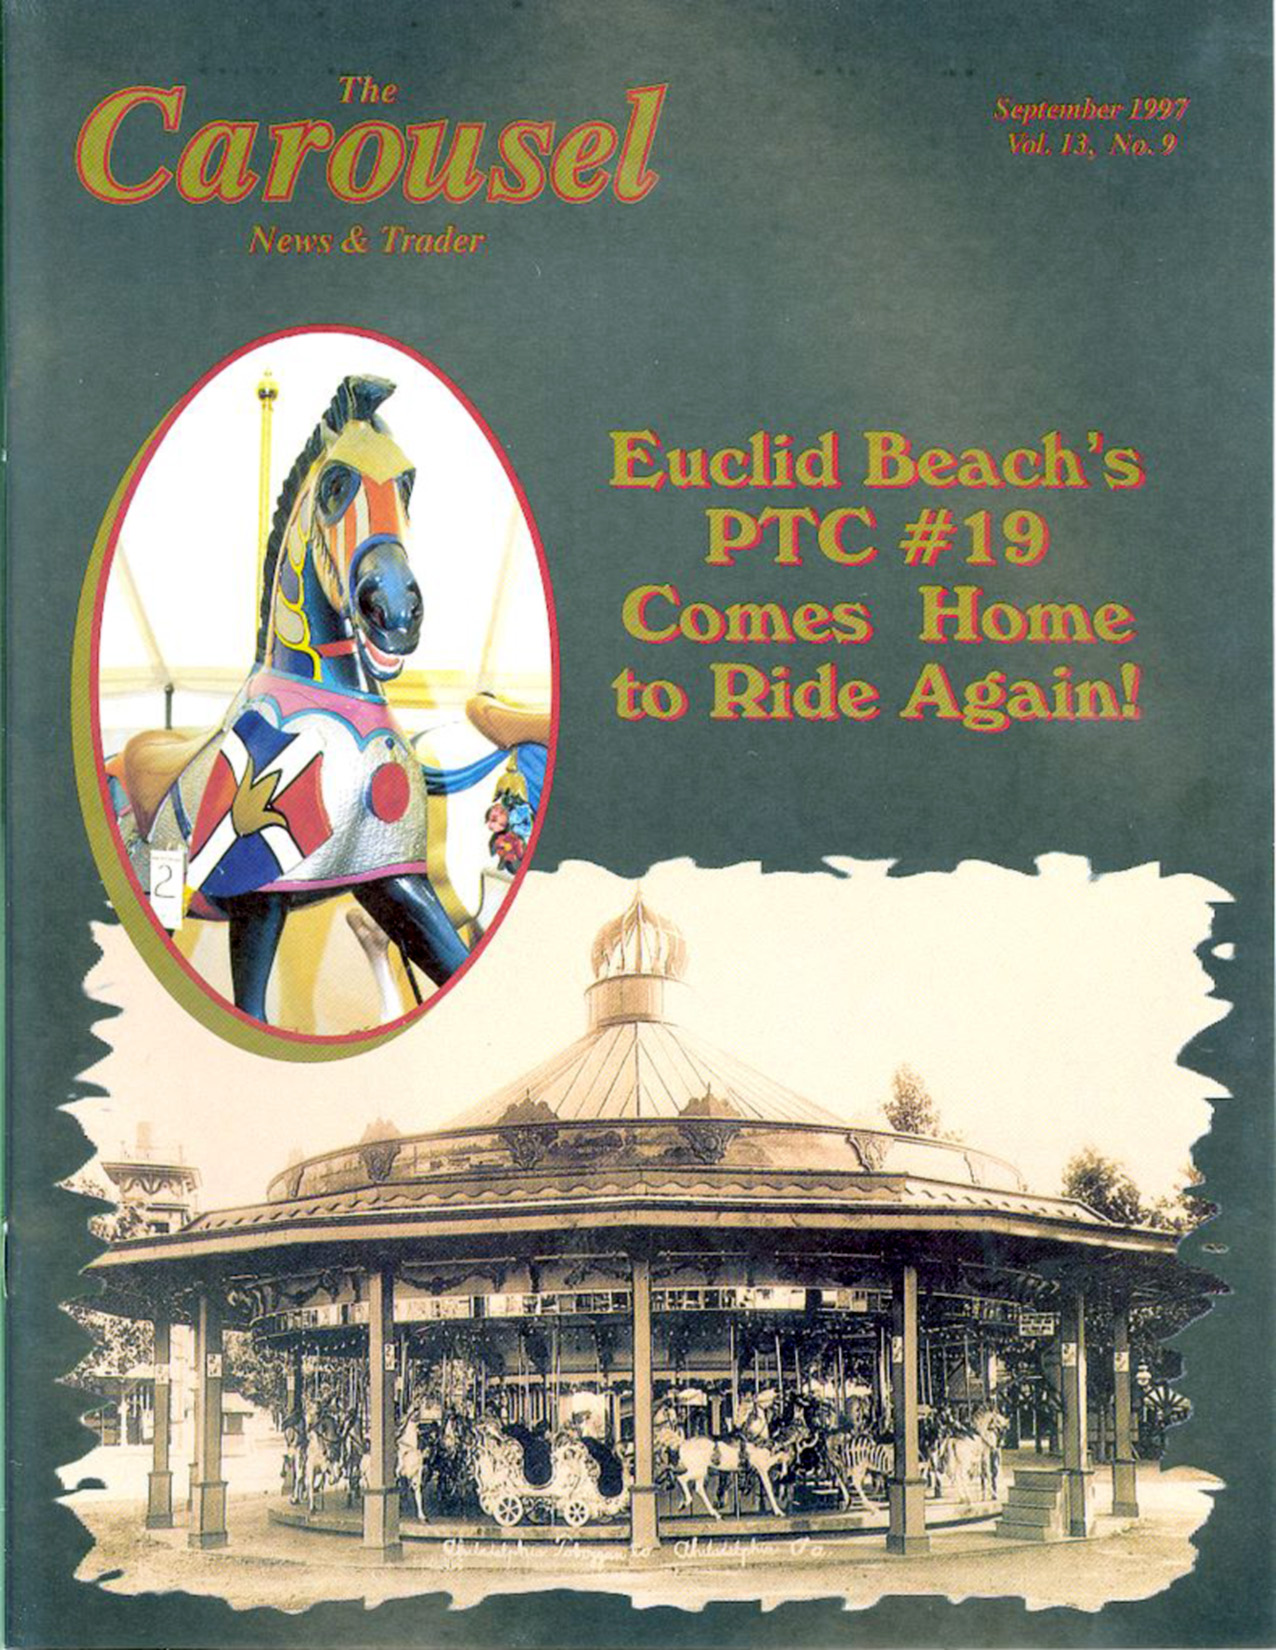 cnt_09_1997-Euclid-Beach-PTC-19-carousel-sells-intact-world-record